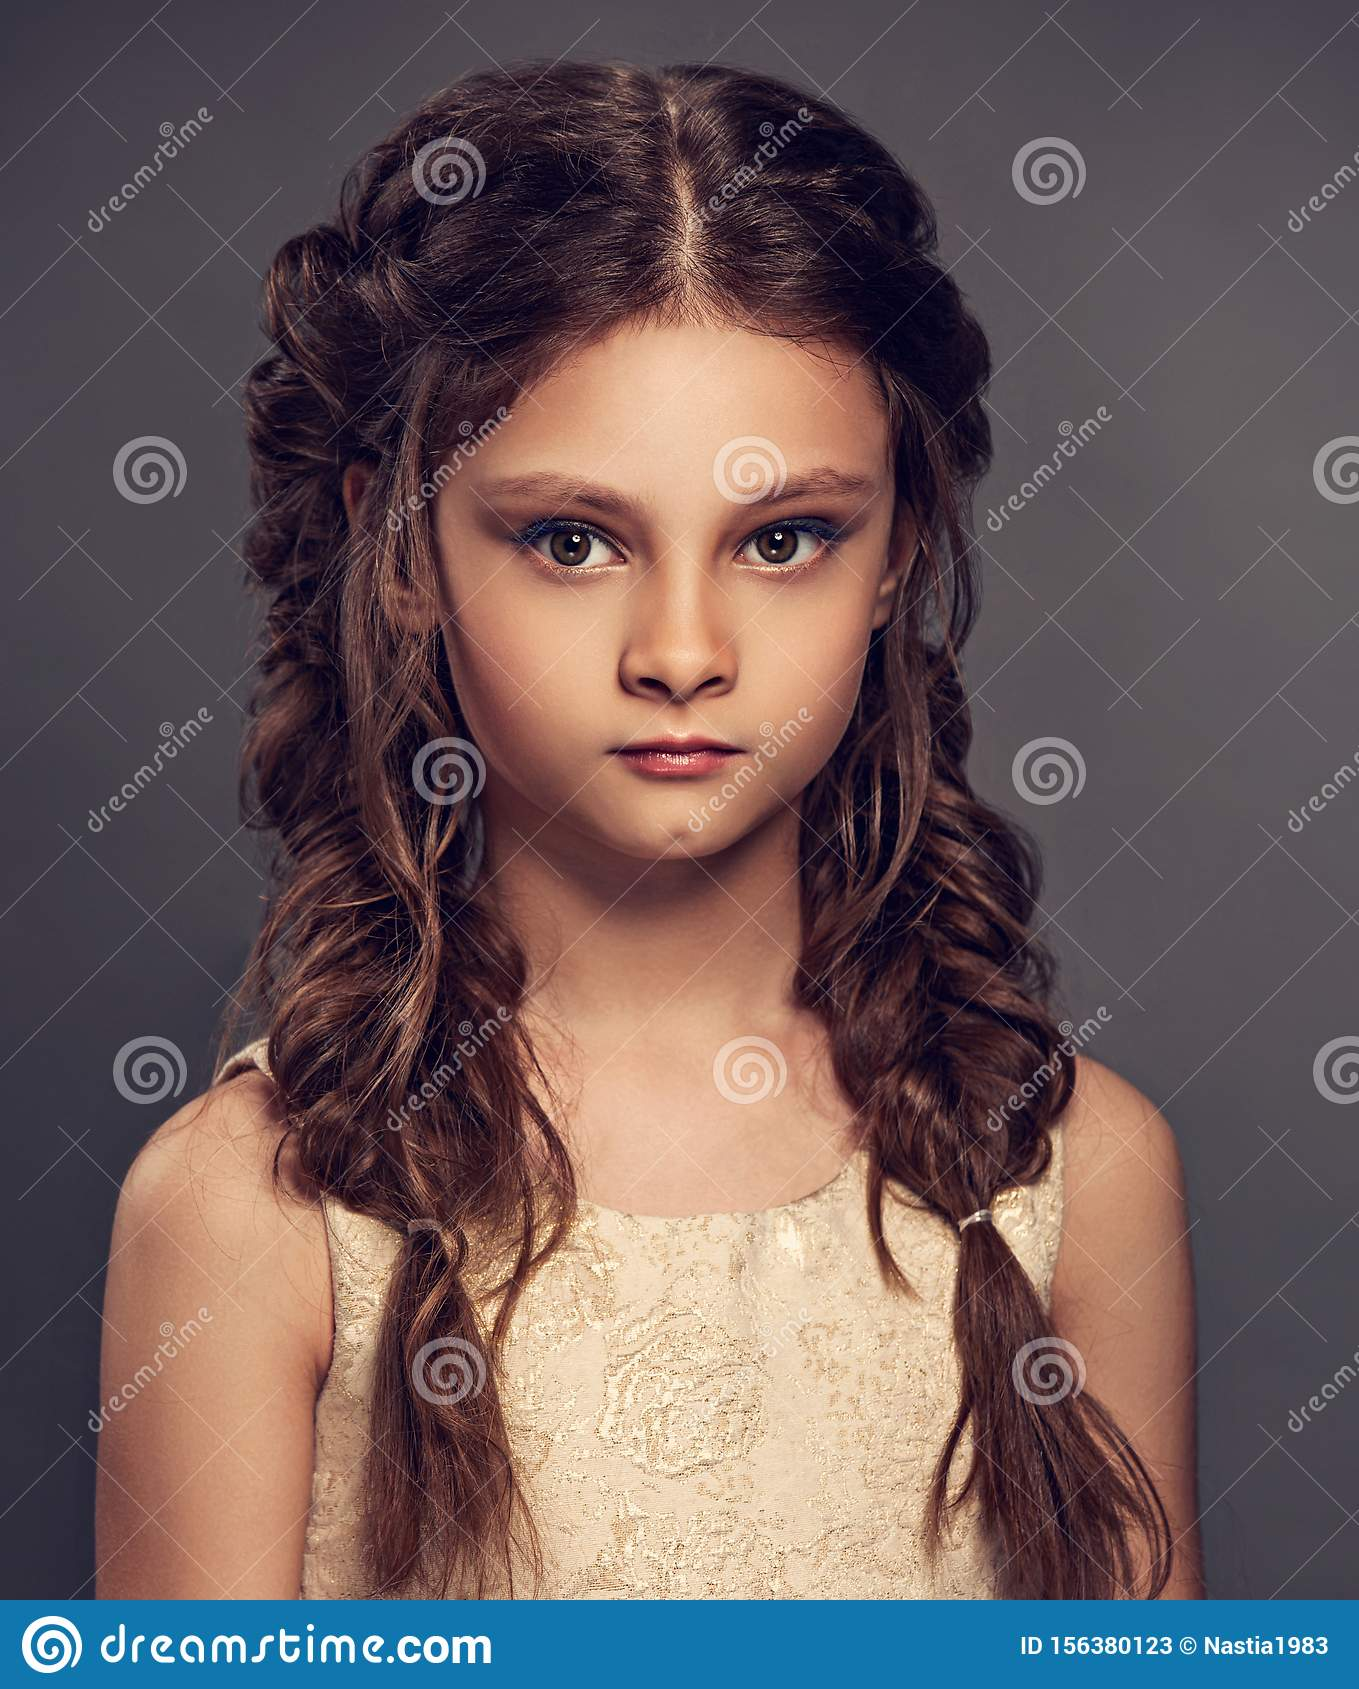 Beauty Portrait Of Wedding Clean Makeup Kid Girl With